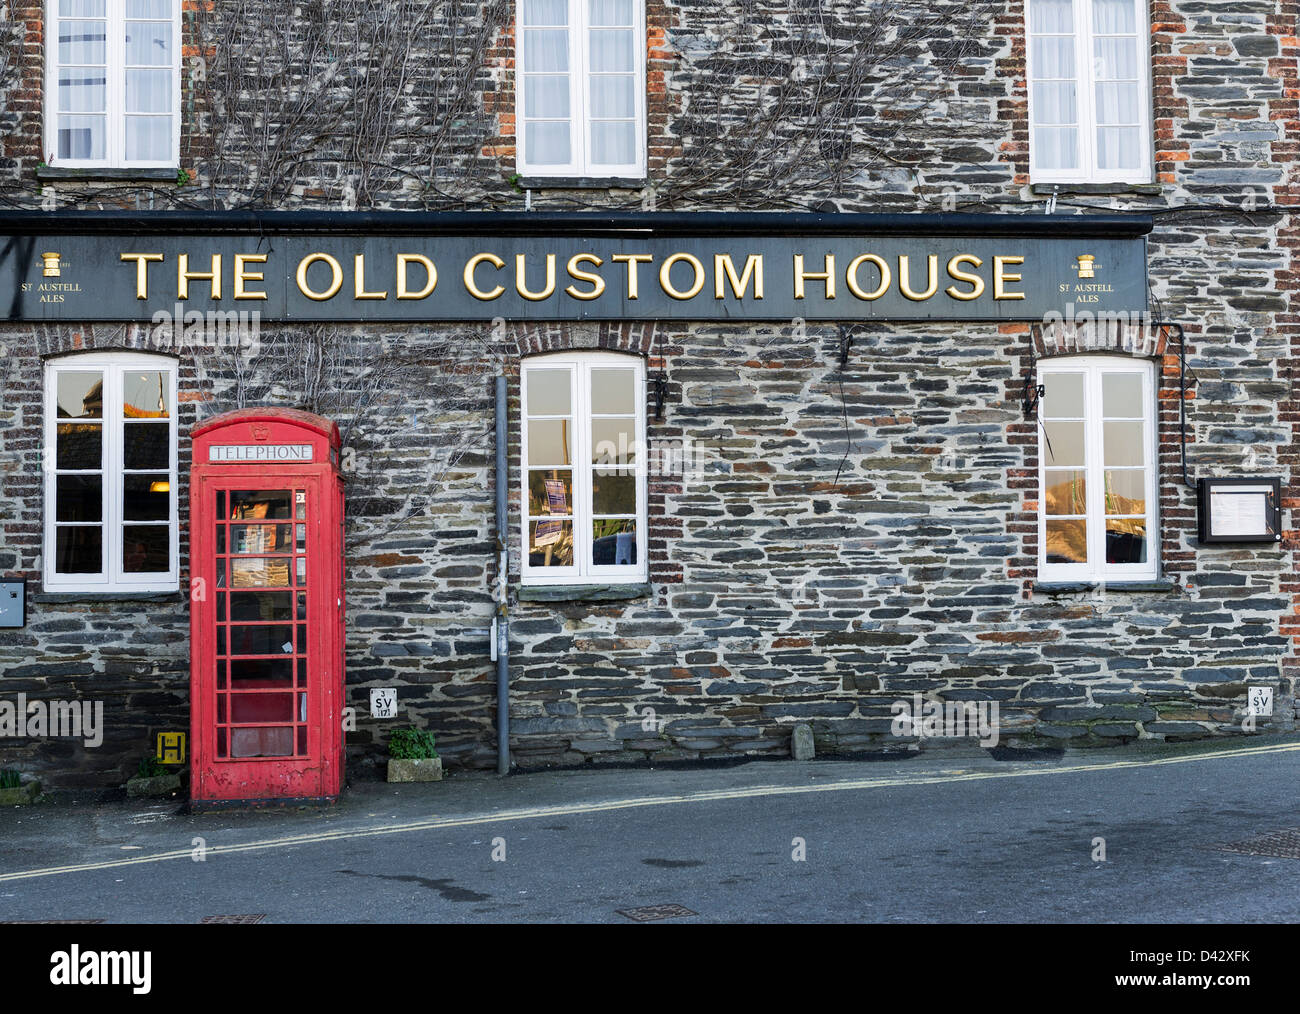 The Old Custom House pub in Padstow. Stock Photo